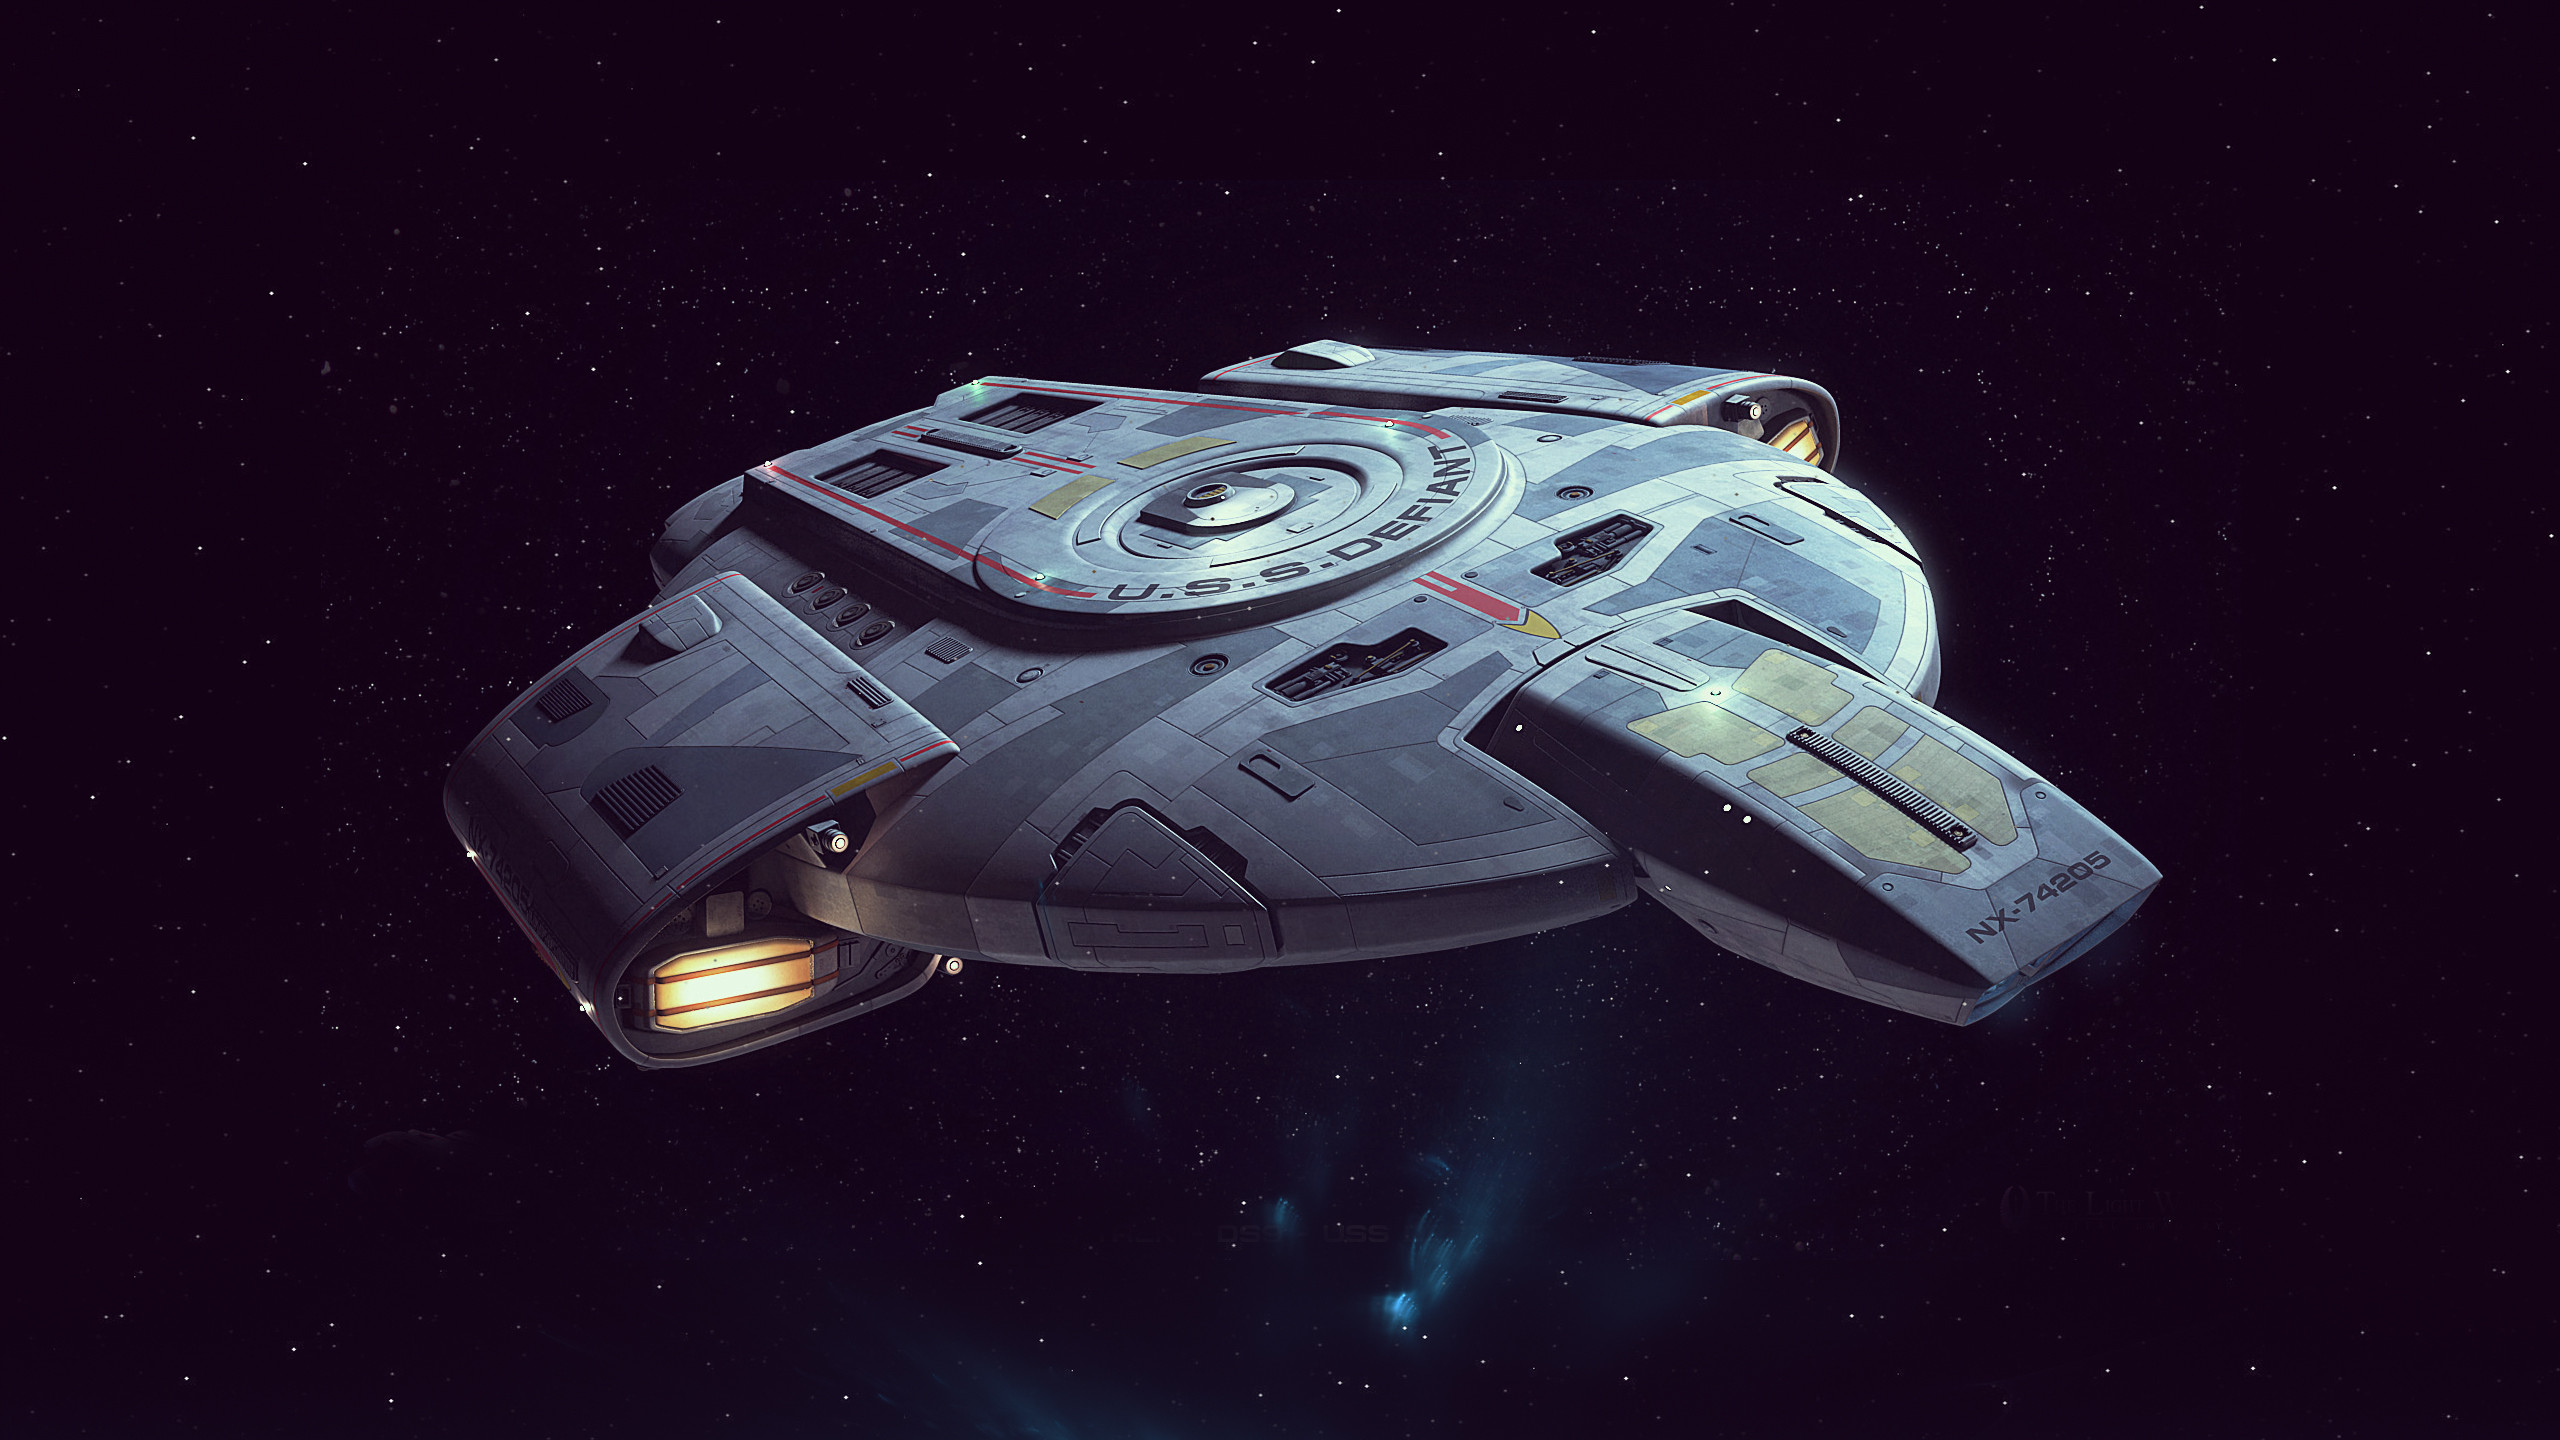 Lcars Wallpaper Iphone X Uss Defiant Full Hd Wallpaper And Background Image